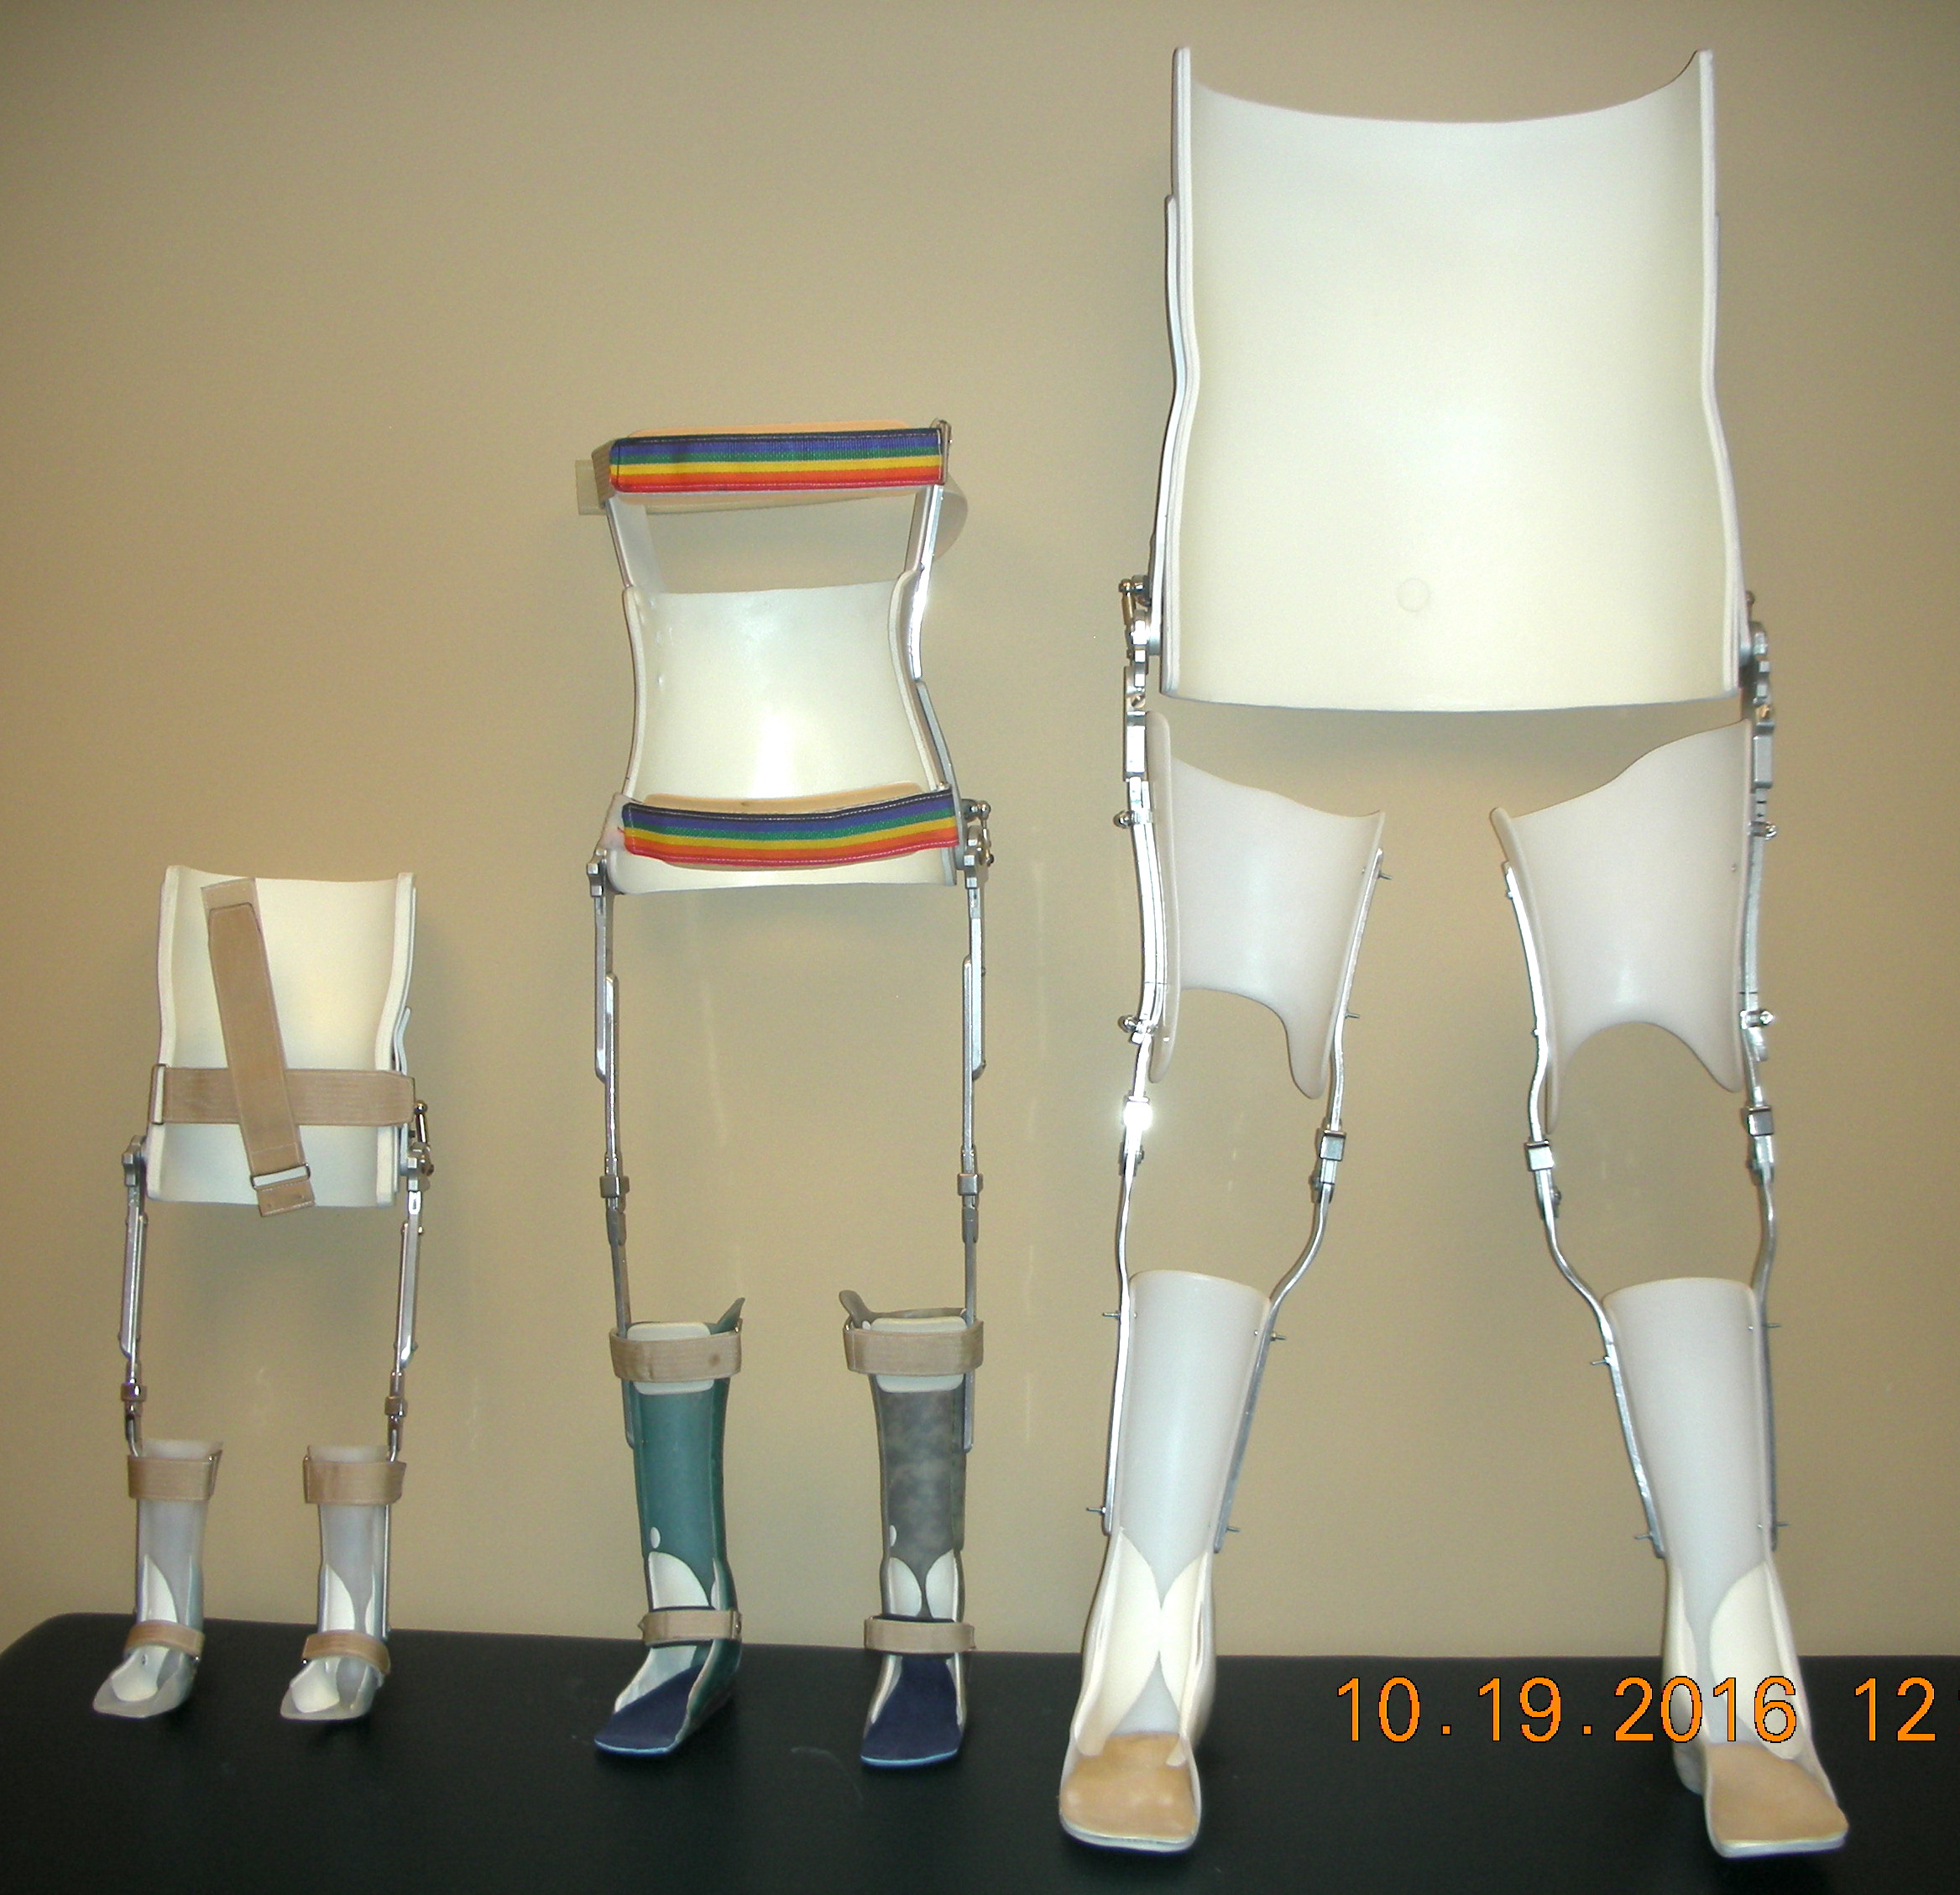 Orthopedic Bracing Solutions Inc Lower Extremity Orthotics